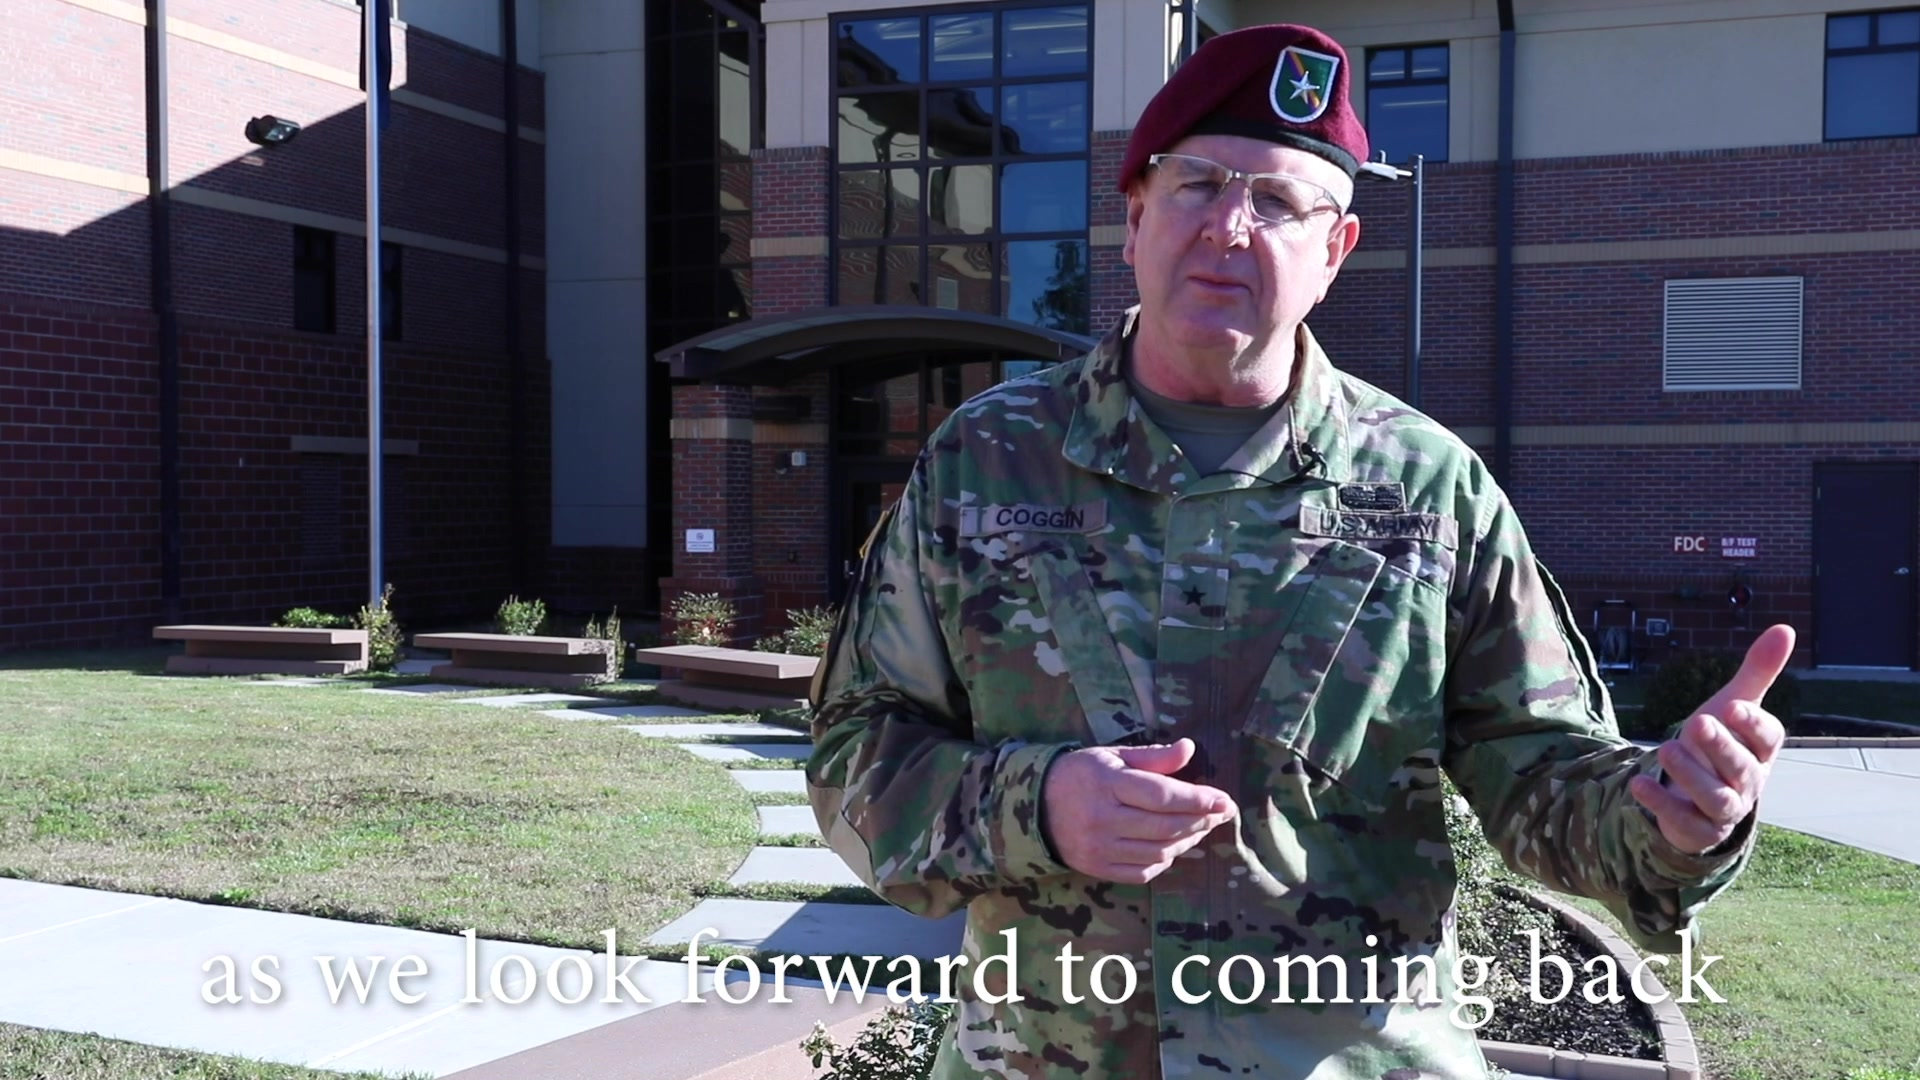 Brig. Gen. Jeffrey C. Coggin speaks about safely enjoying this holiday season, looking out for your battle buddies, updating PHA/MEDPROS and COVID-19 Safety.